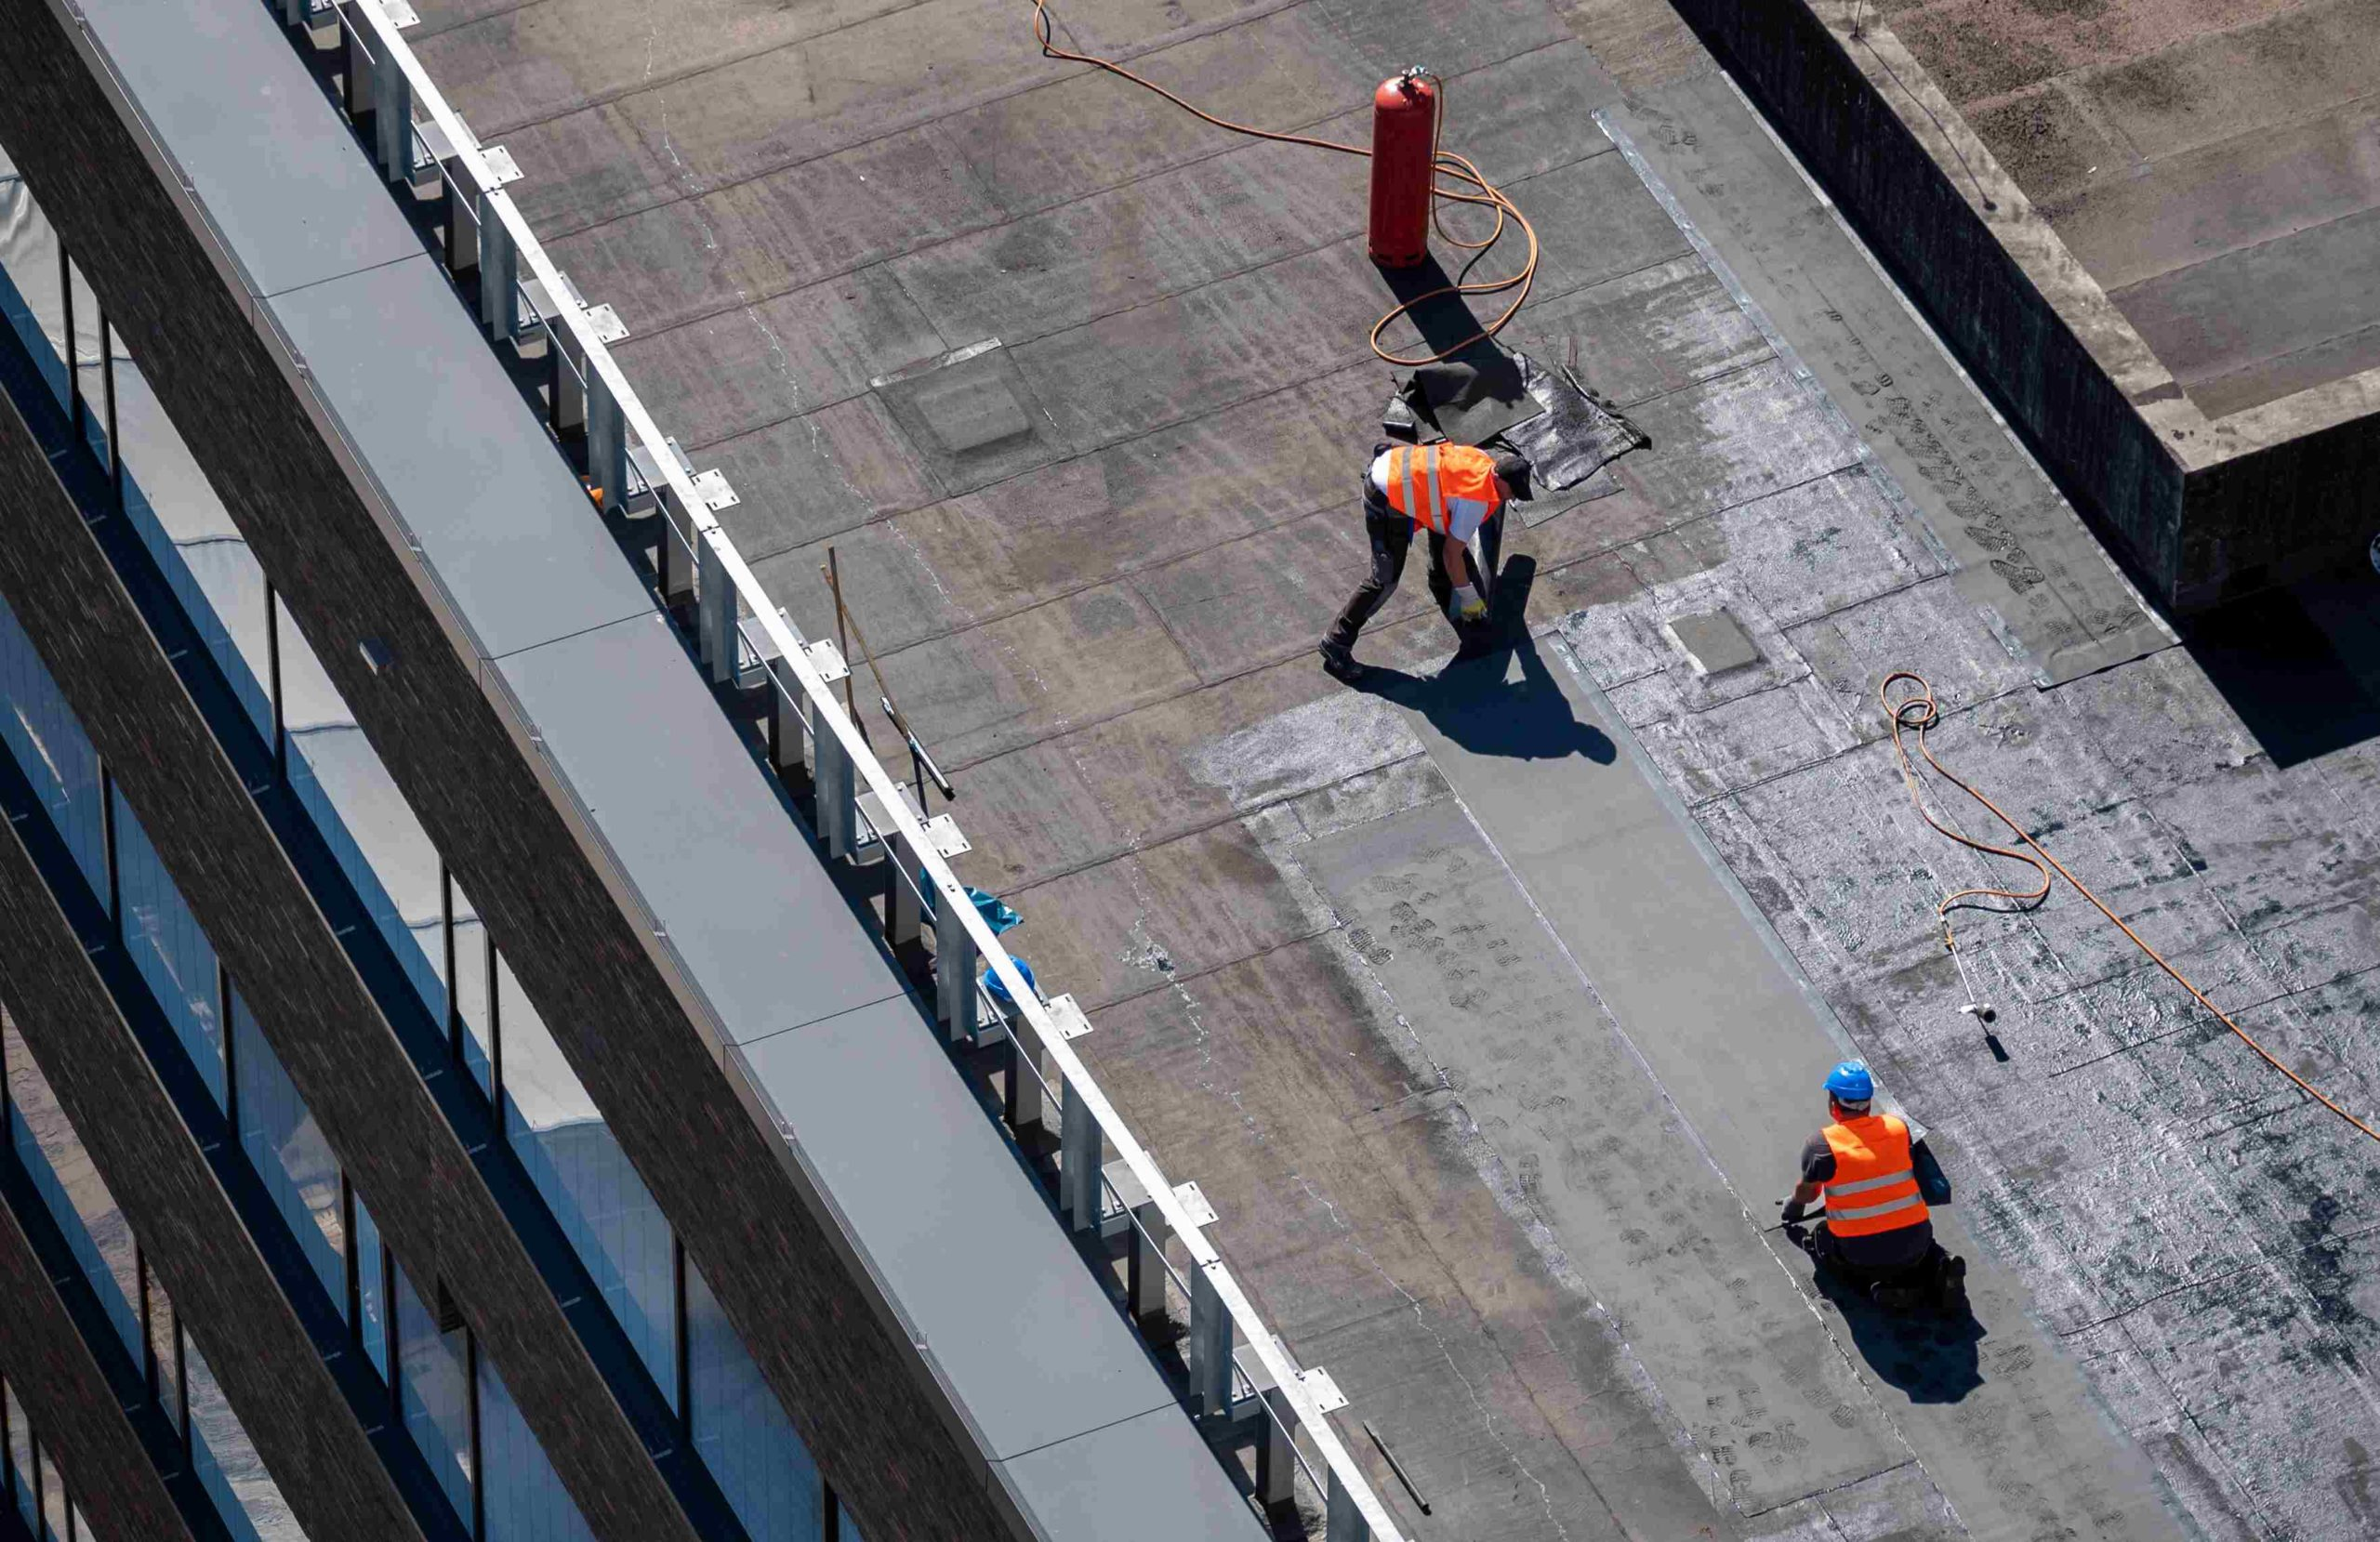 Workers laying bitumen on a building's roof. Bitumen can be used for roofing in order to protect the building from water penetration and damp.